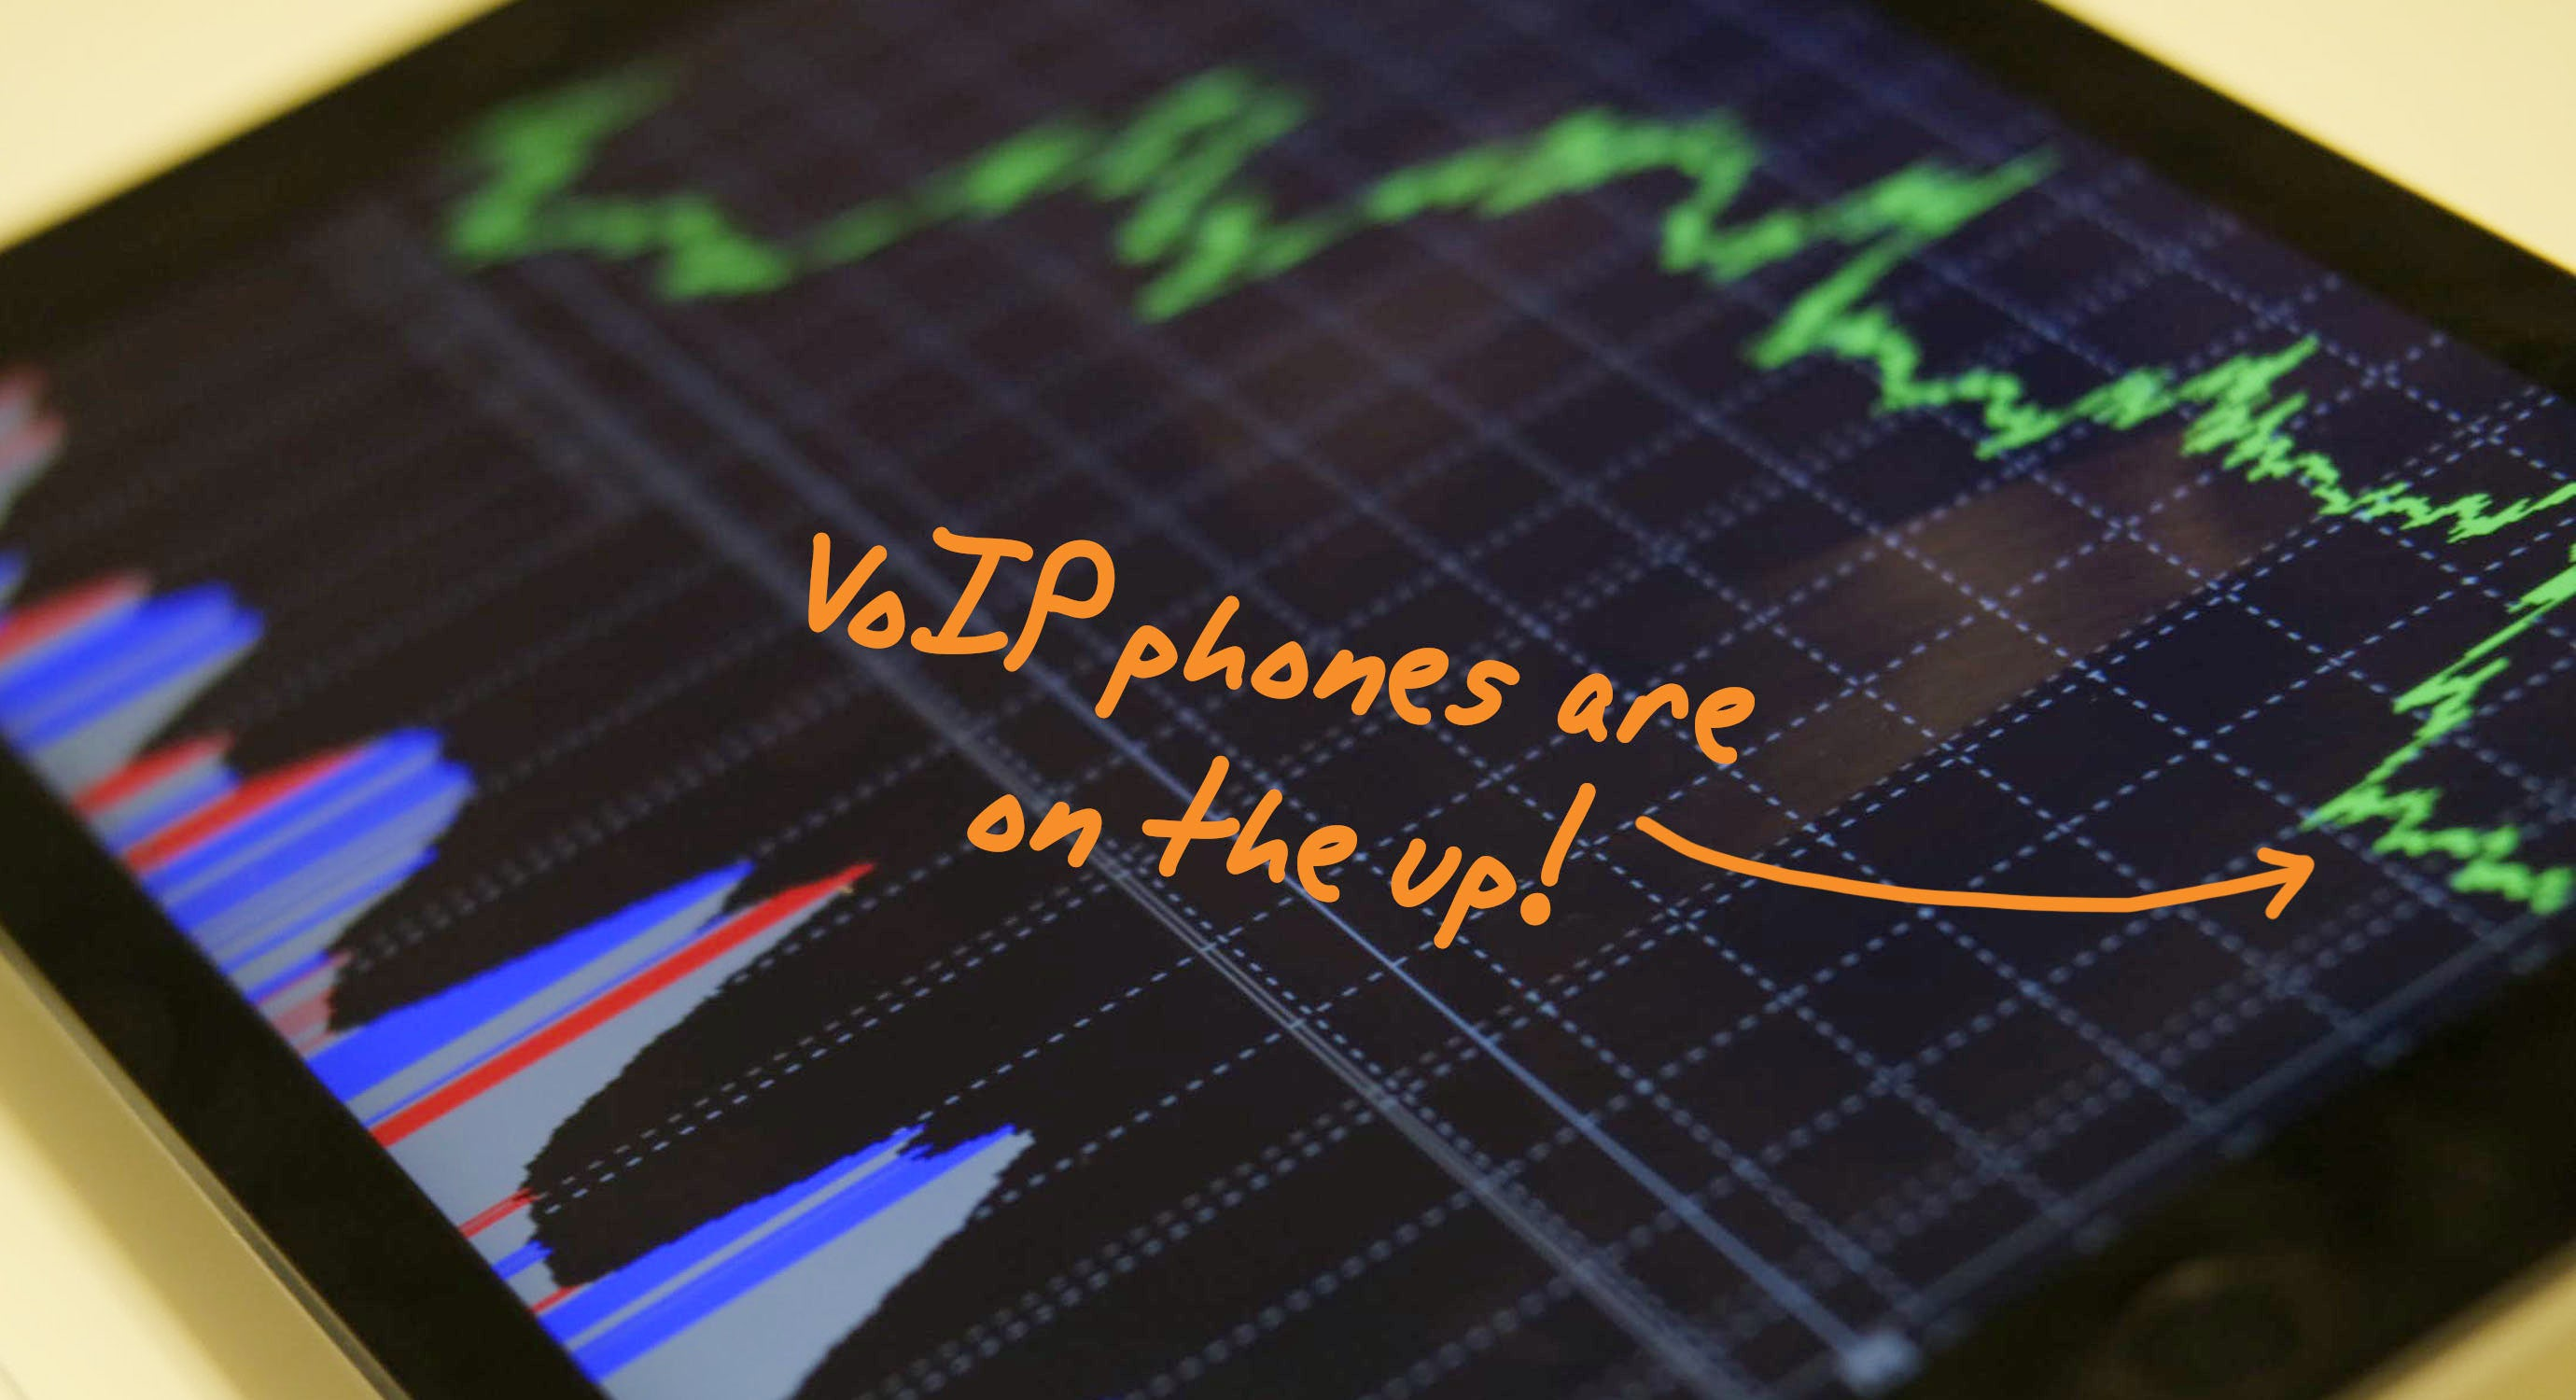 Graph showing upward trend of VoIP systems in the last 10 years